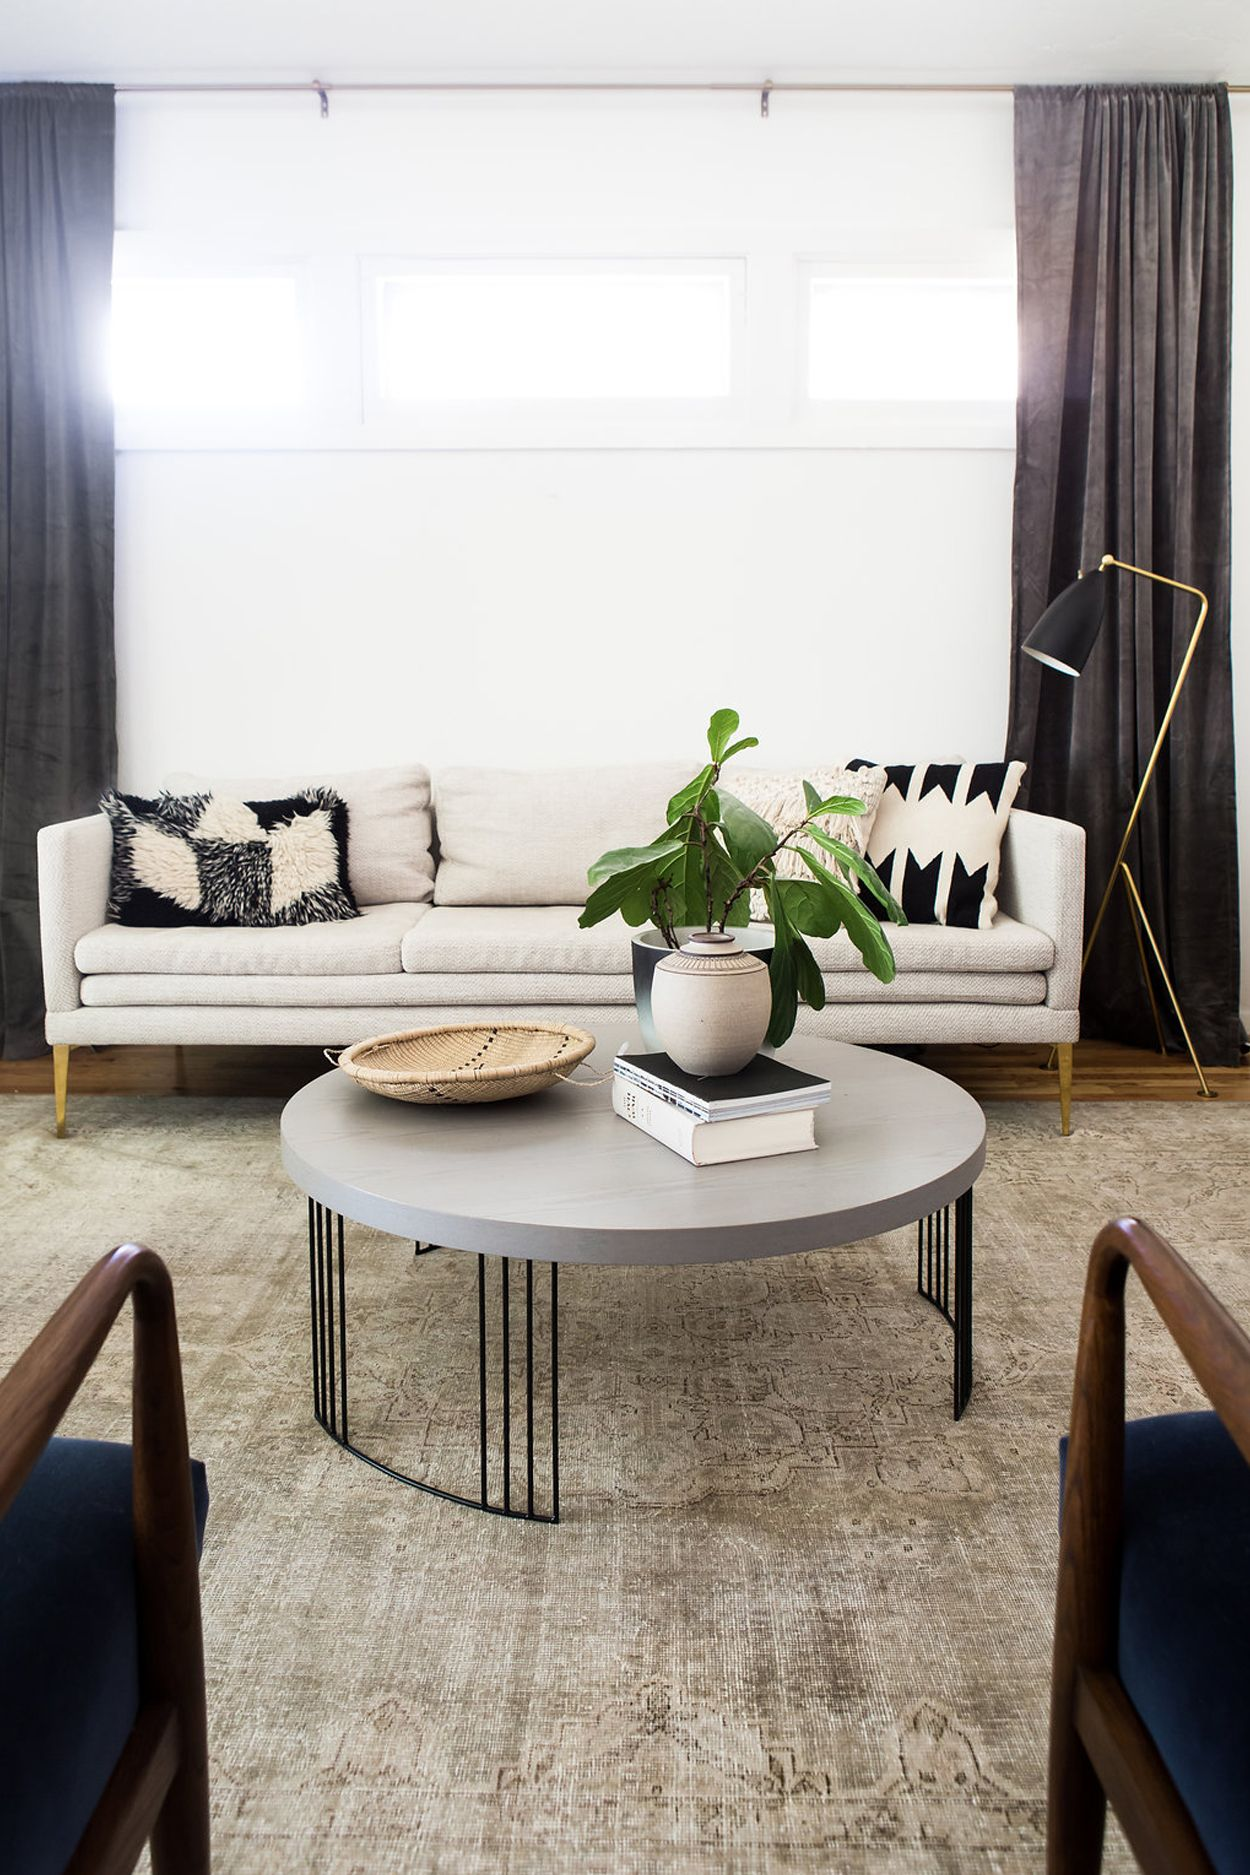 My Favorite Detail On The Sofa Is The Brass Legs